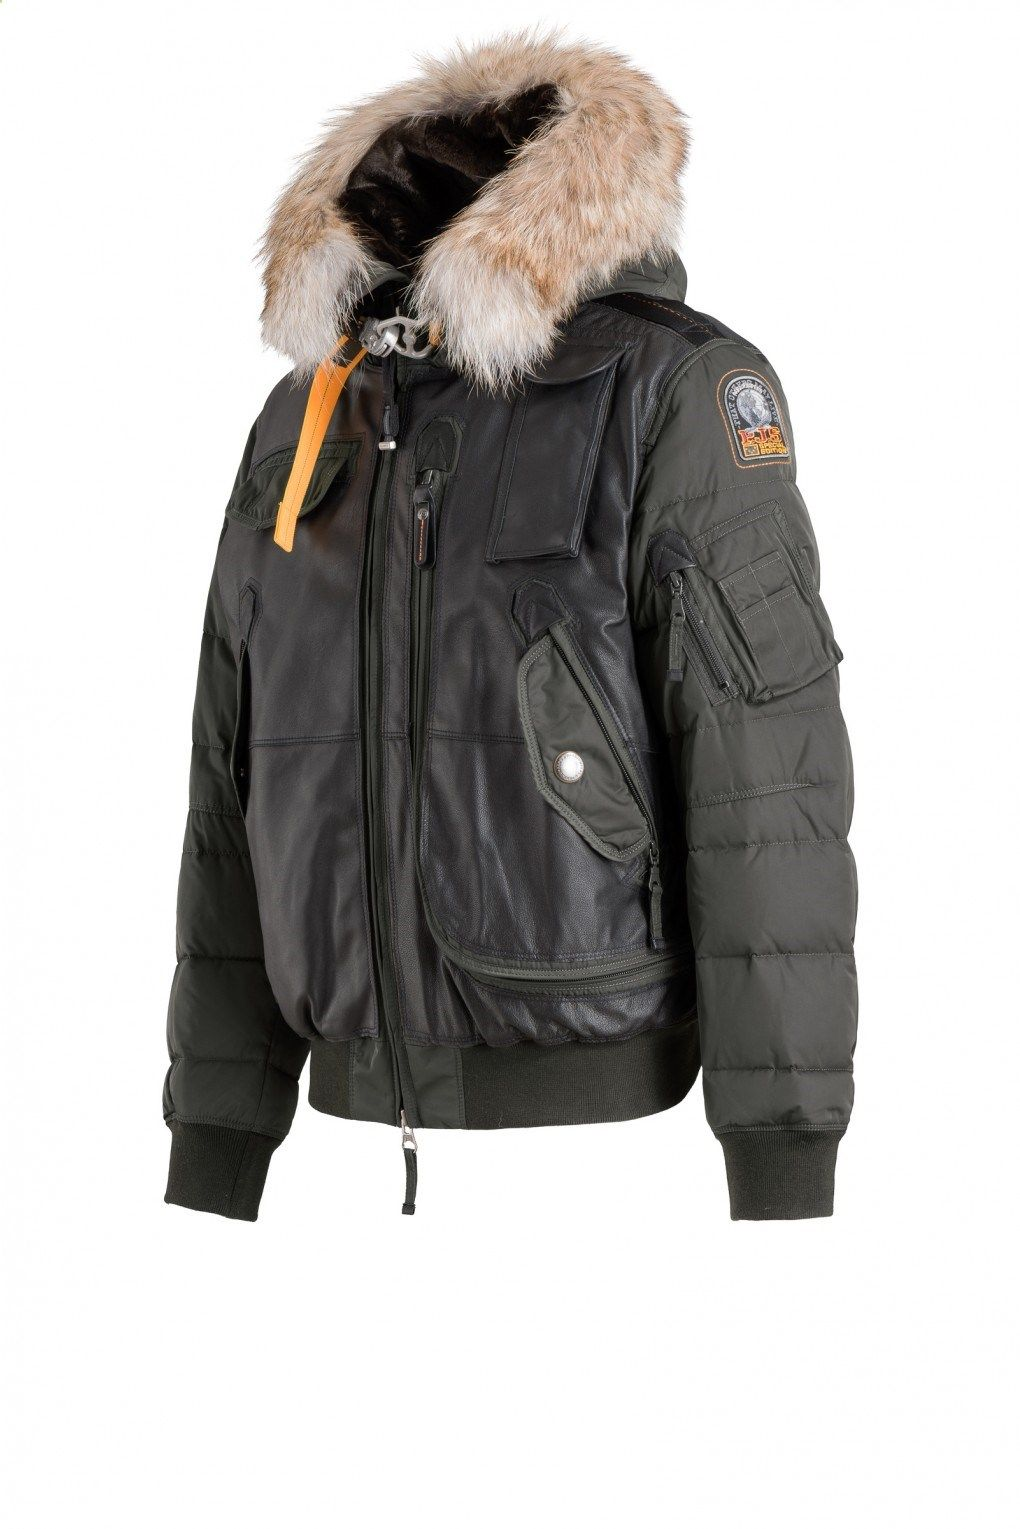 GRIZZLY - jackets - MAN | Parajumpers